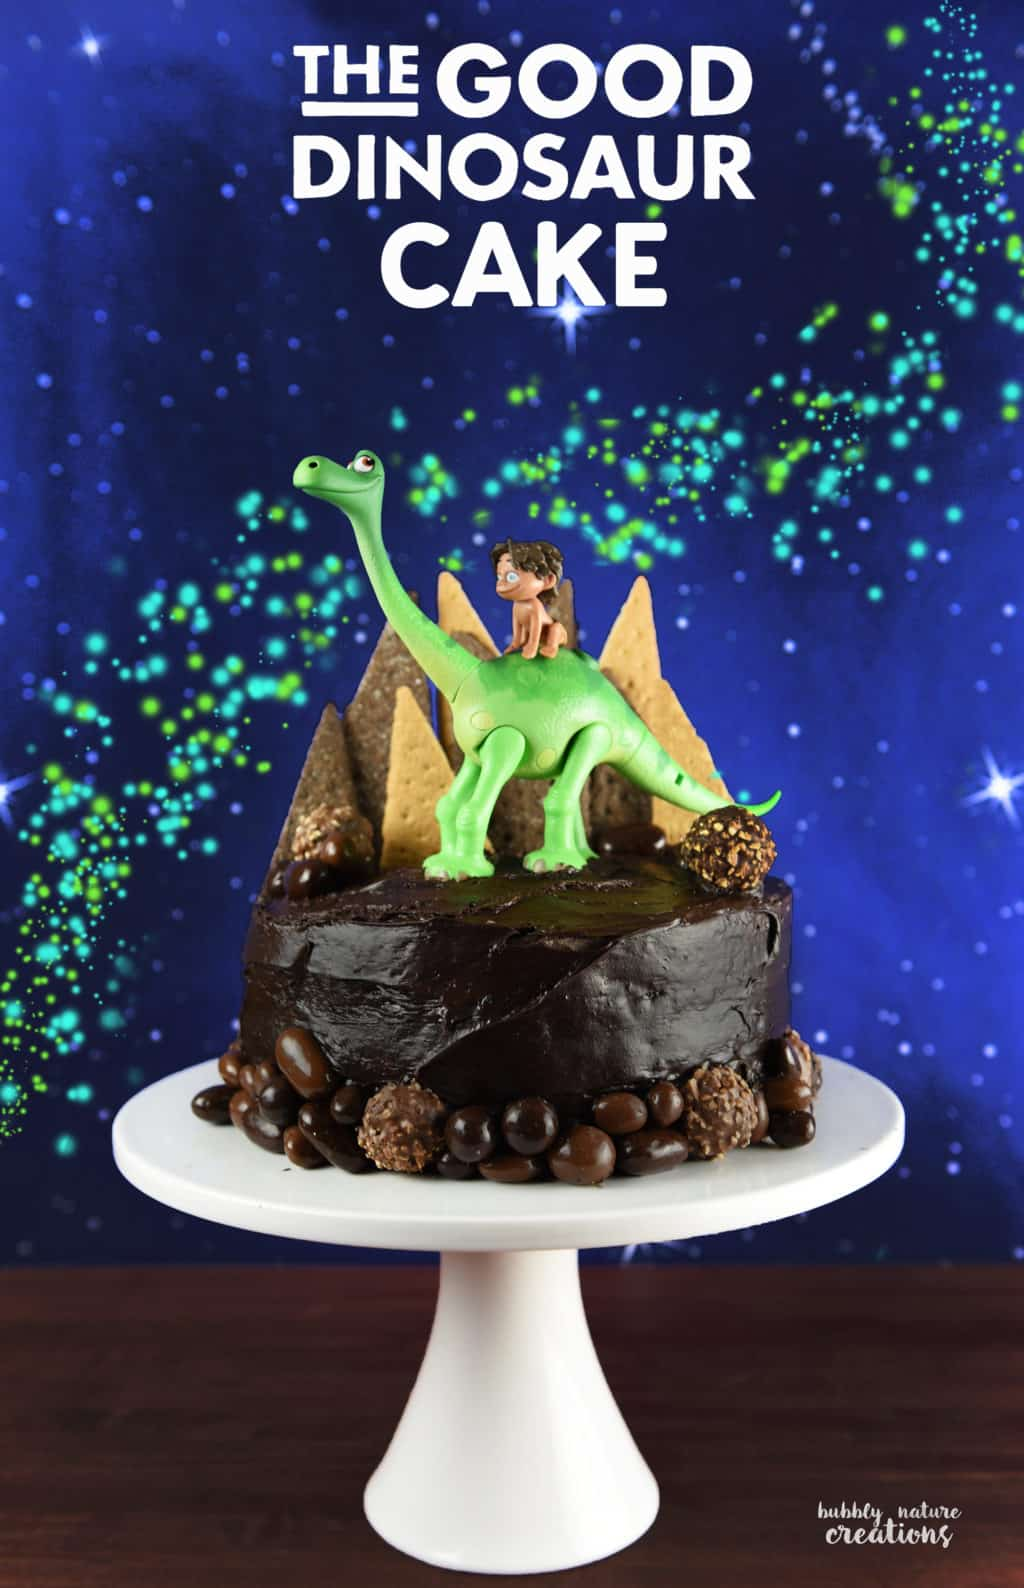 The Good Dinosaur Cake!! So Cute for a Disney The Good Dinosaur party!